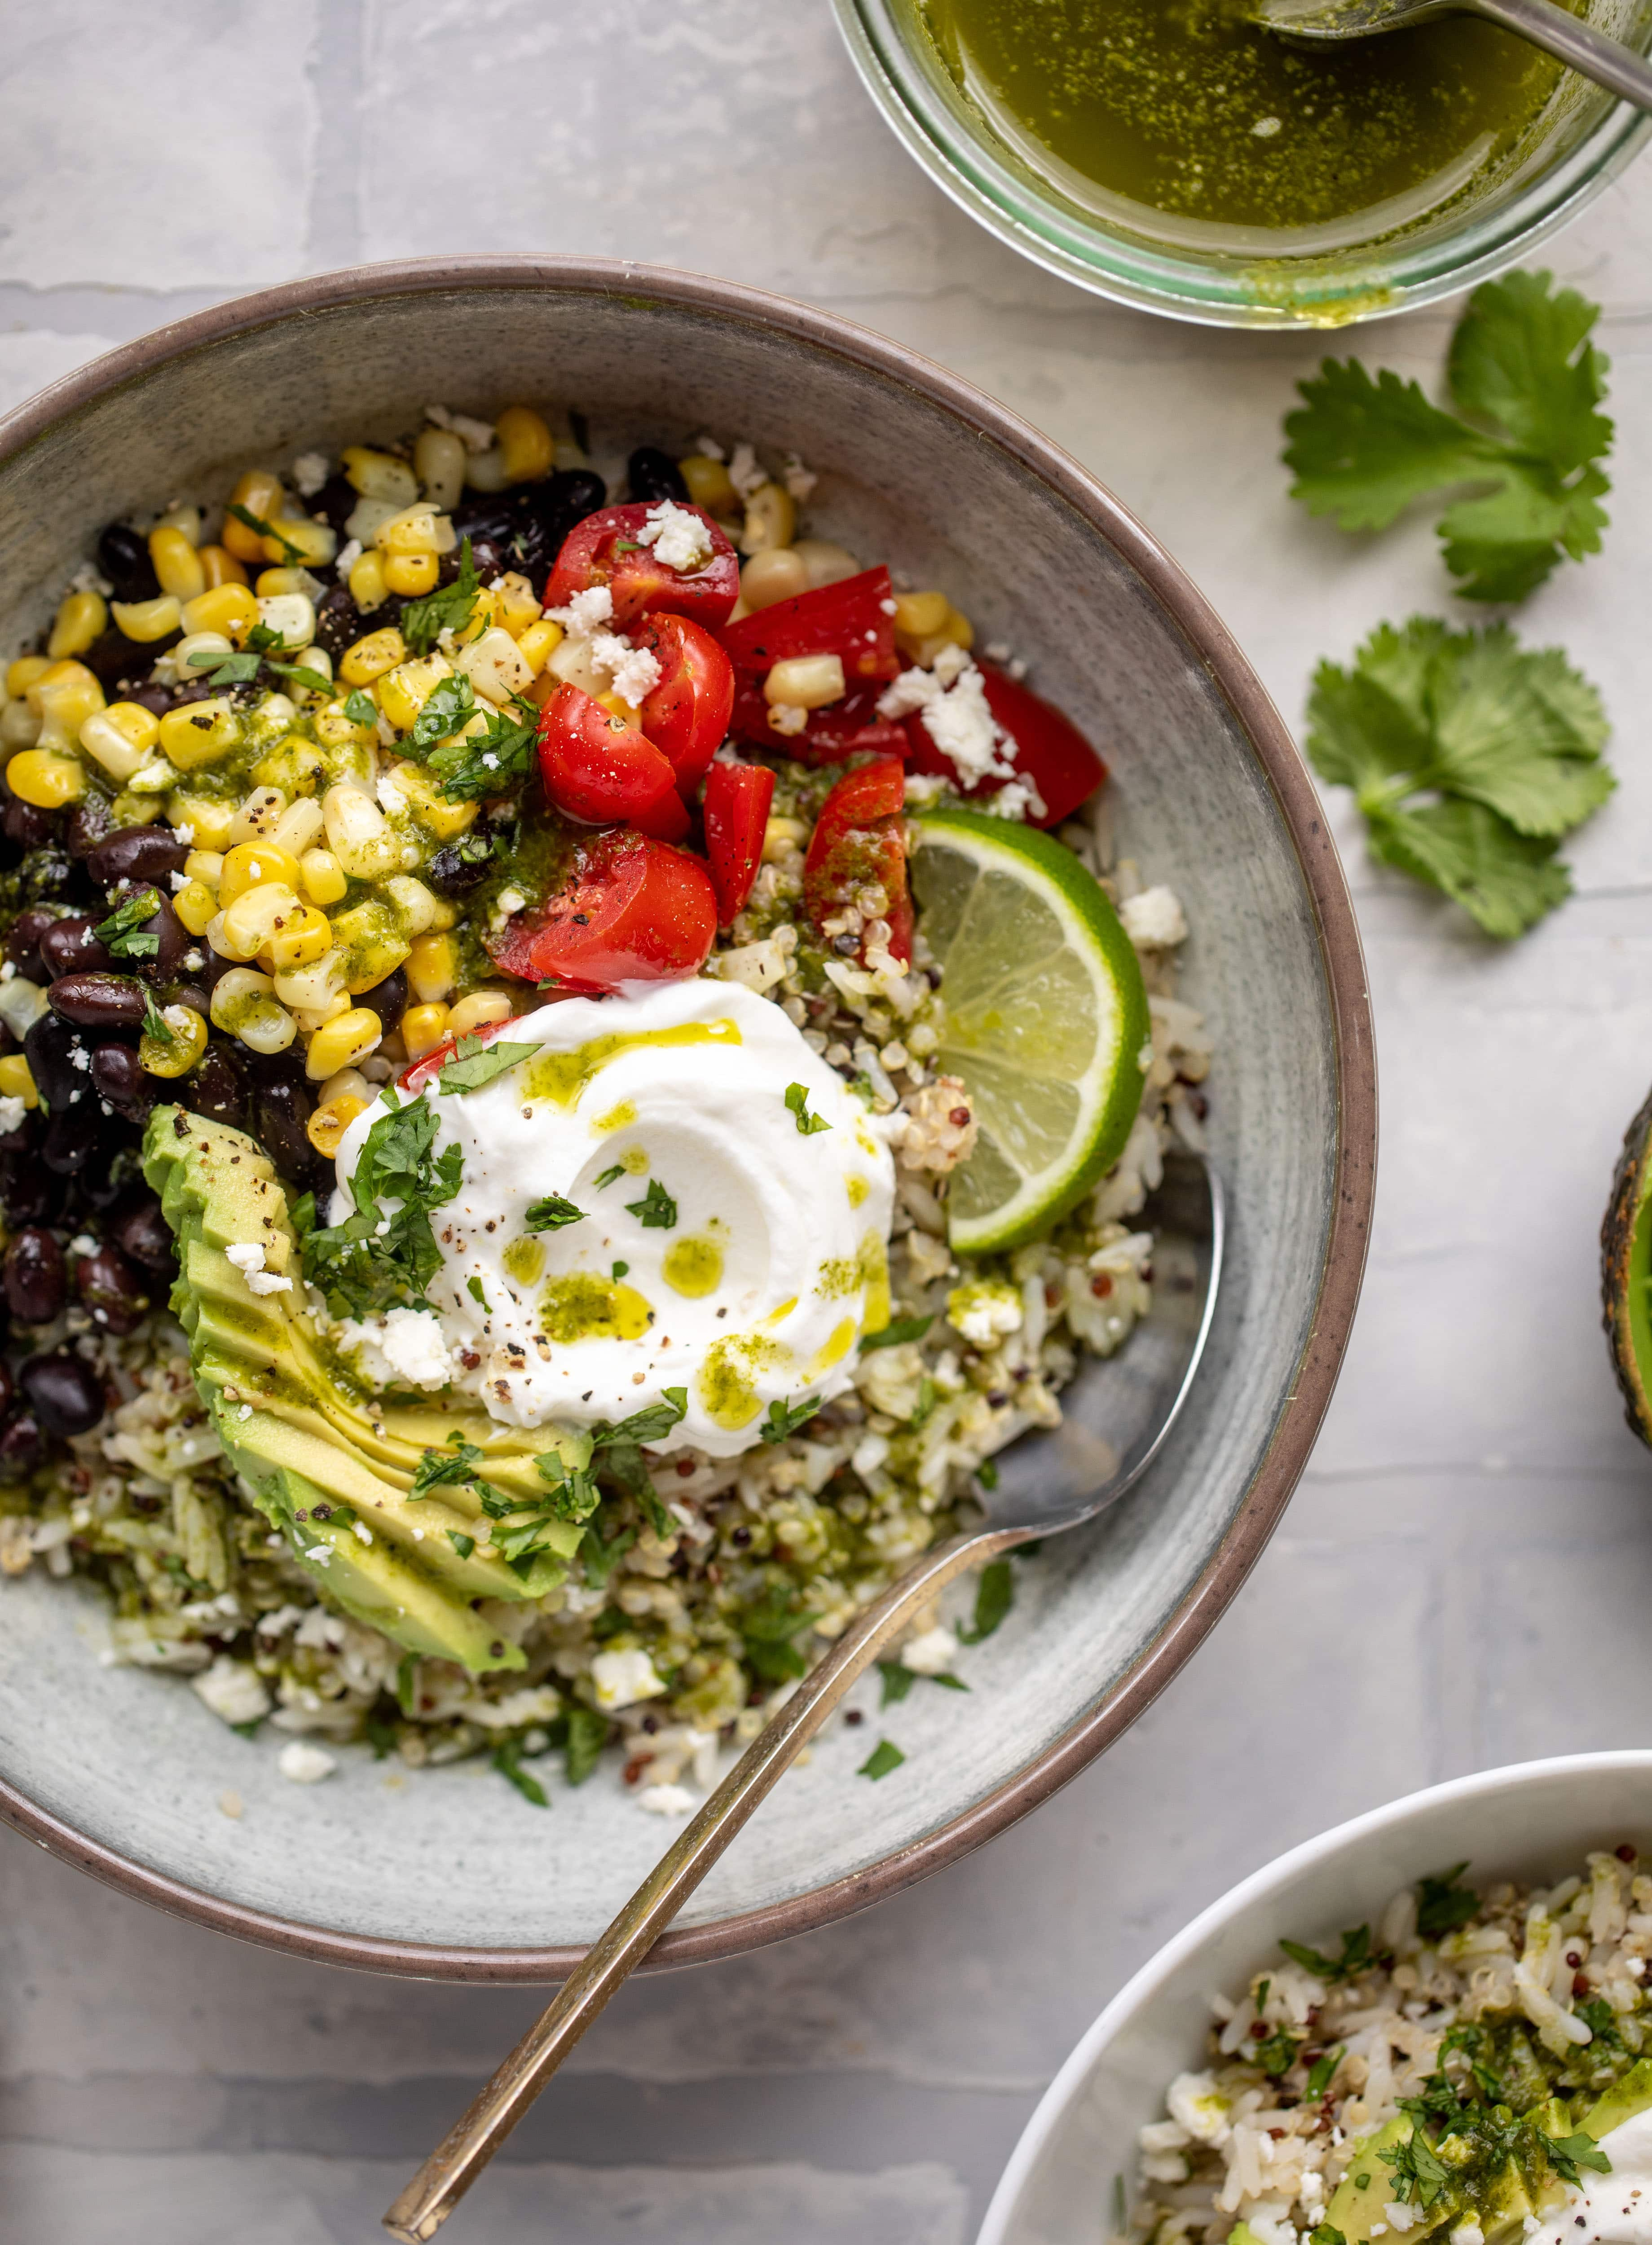 These baja grain bowls are a delicious copycat of the Panera baja grain bowls! Rice, quinoa, beans, tomatoes and cilantro lime vinaigrette!